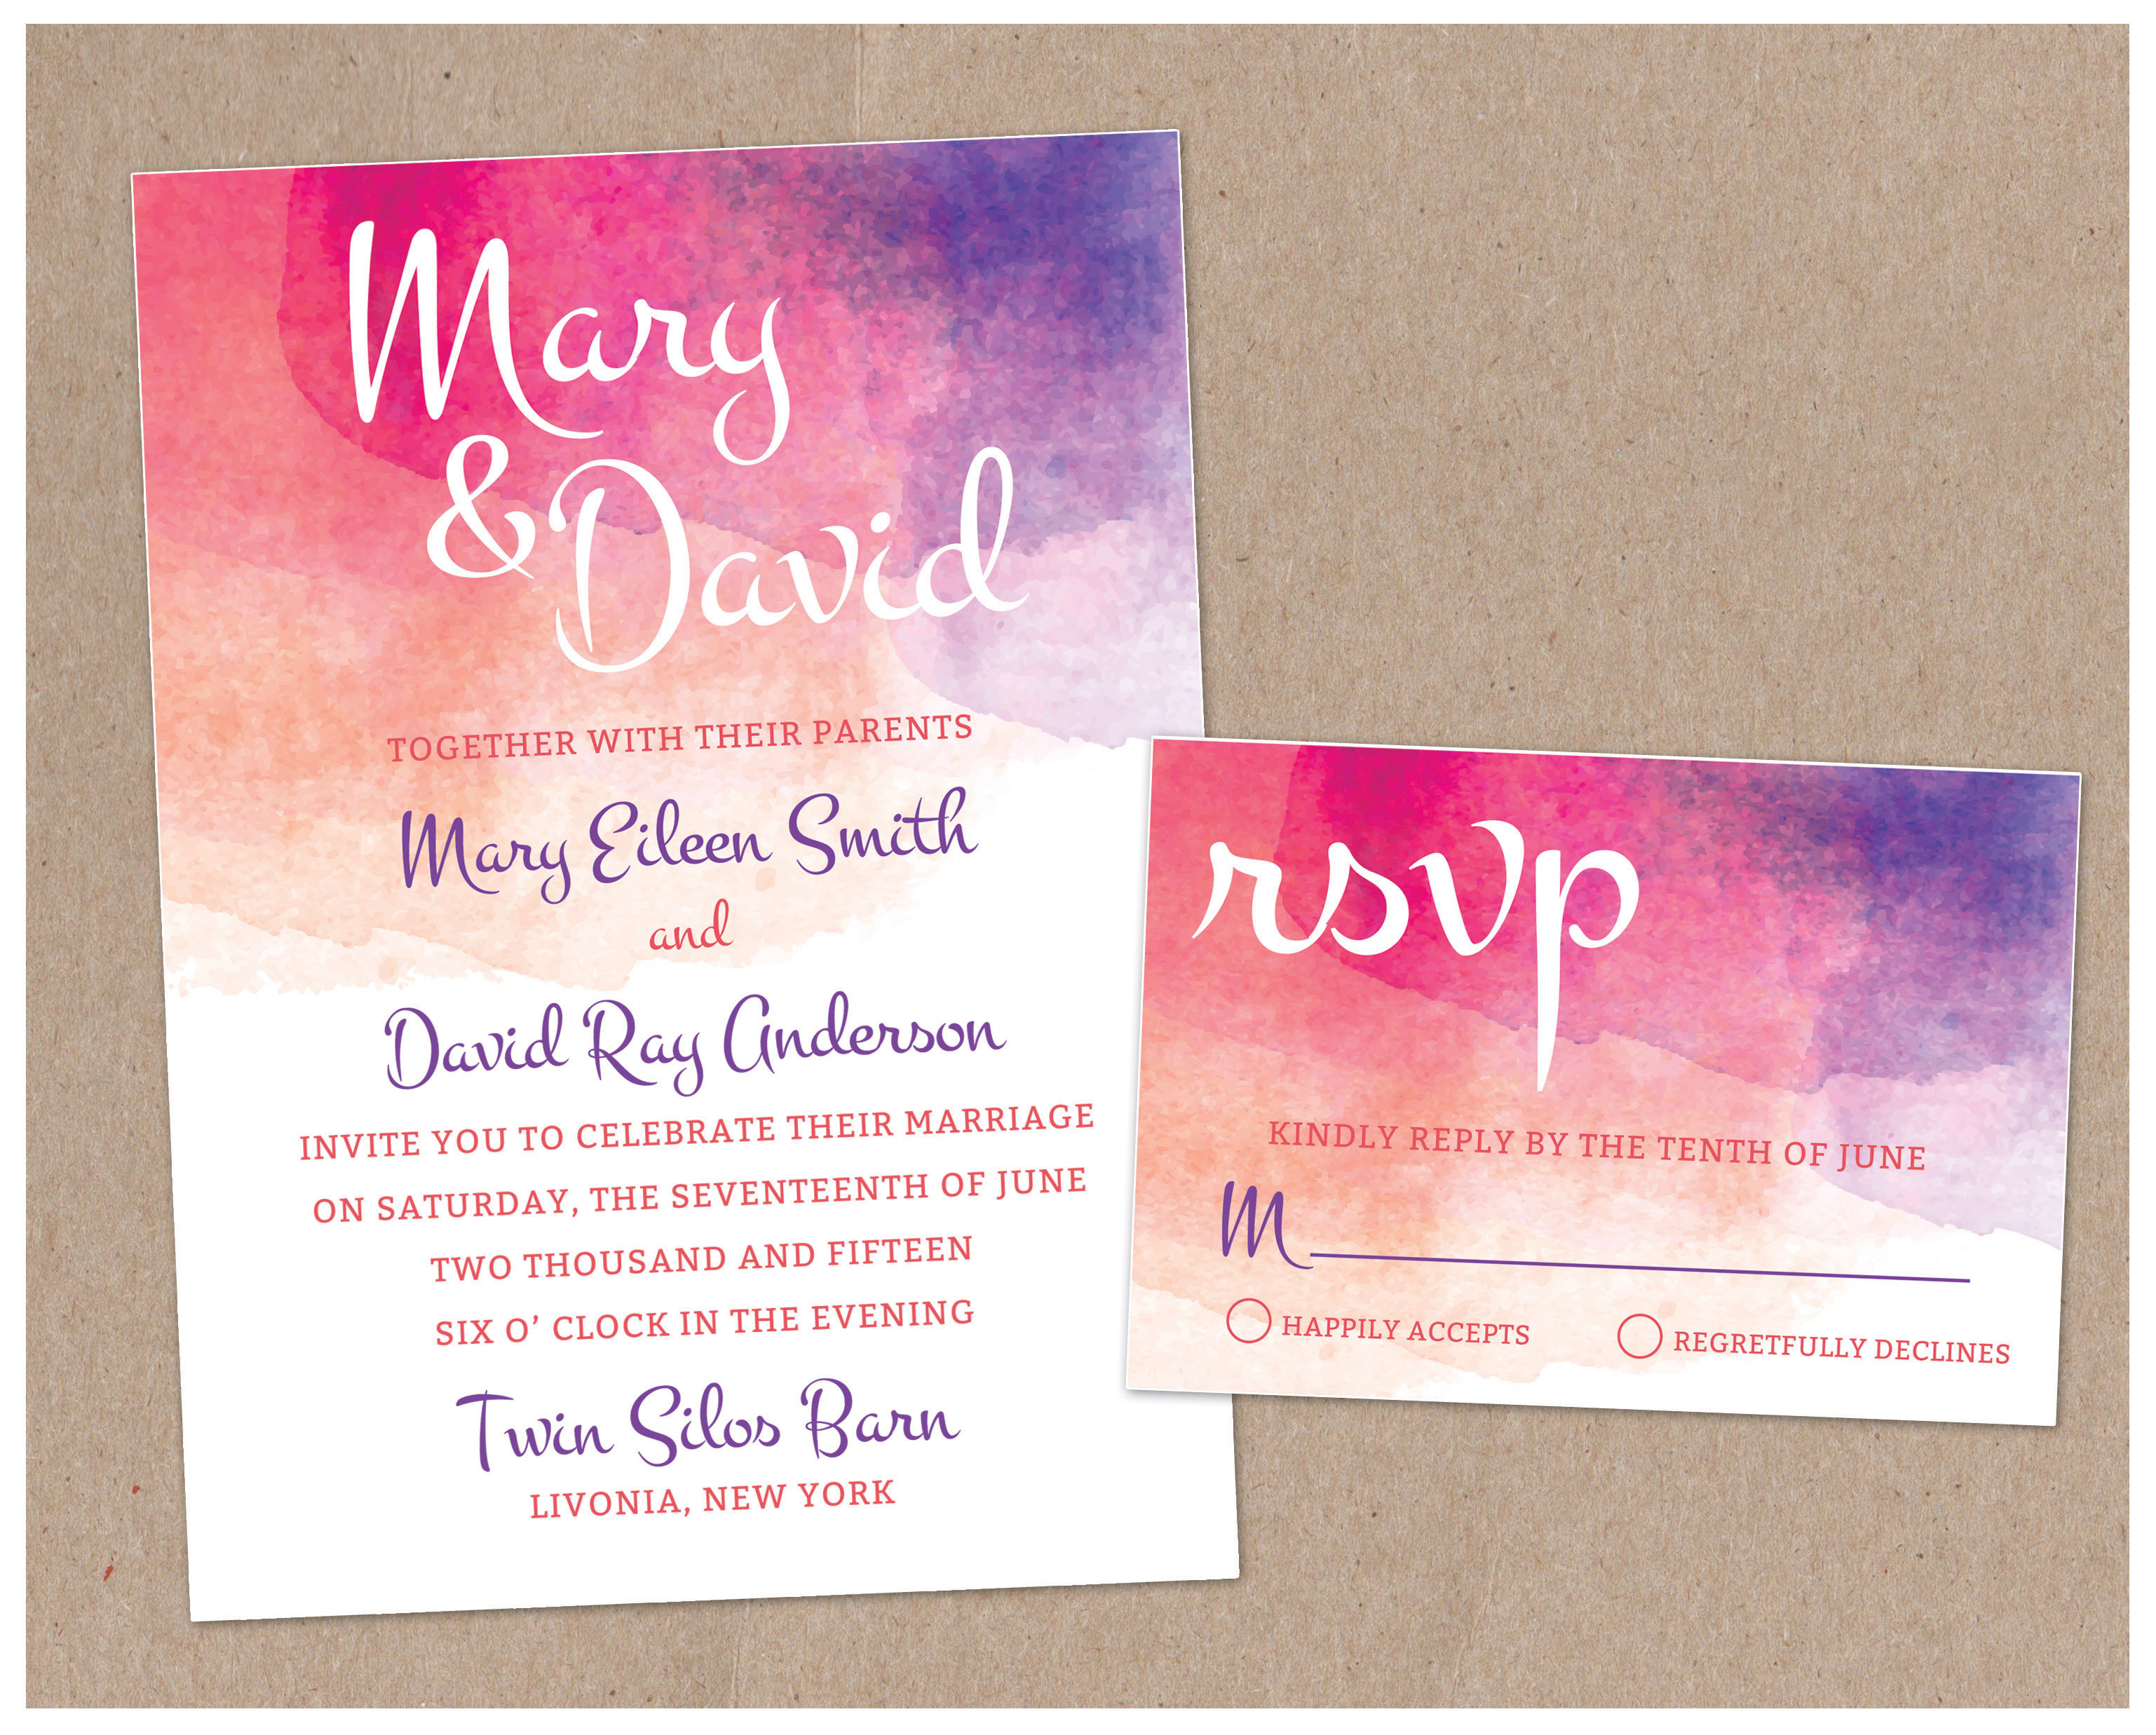 watercolor wedding invite PRINTING by Penny Lane